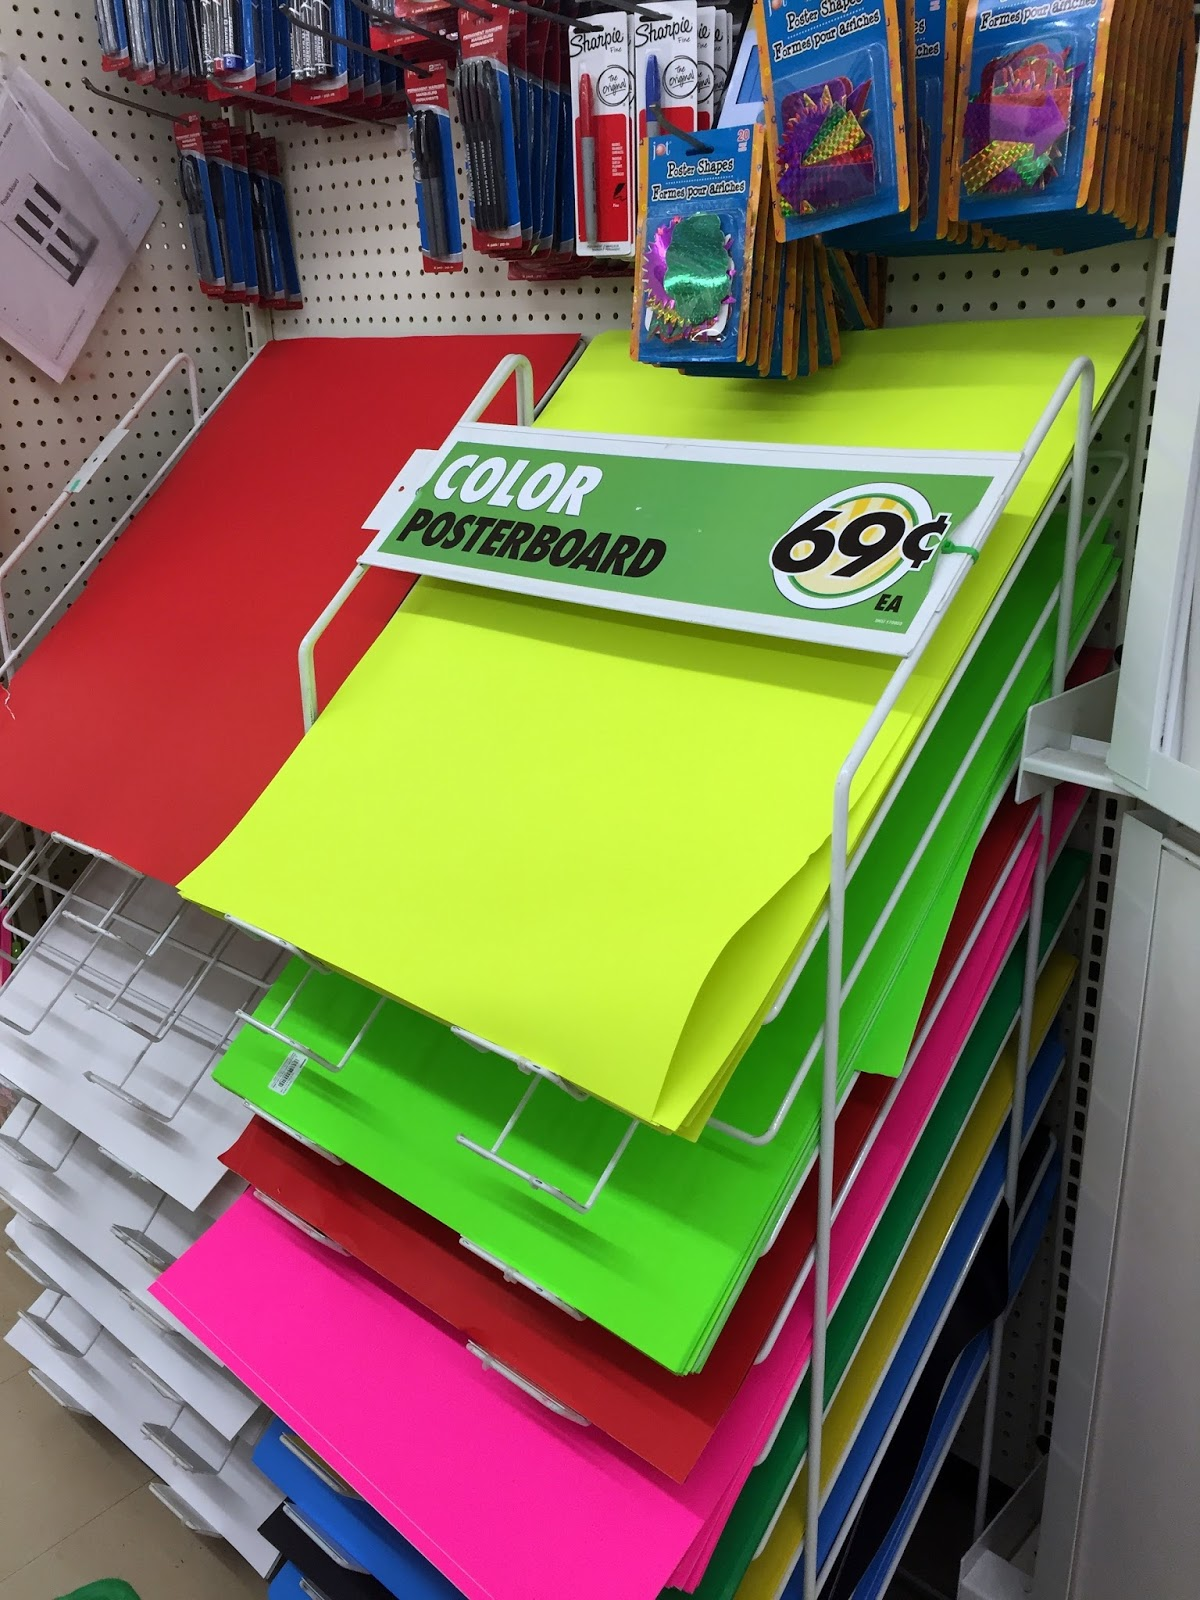 19 Things You Should Always Buy at the Dollar Store or else